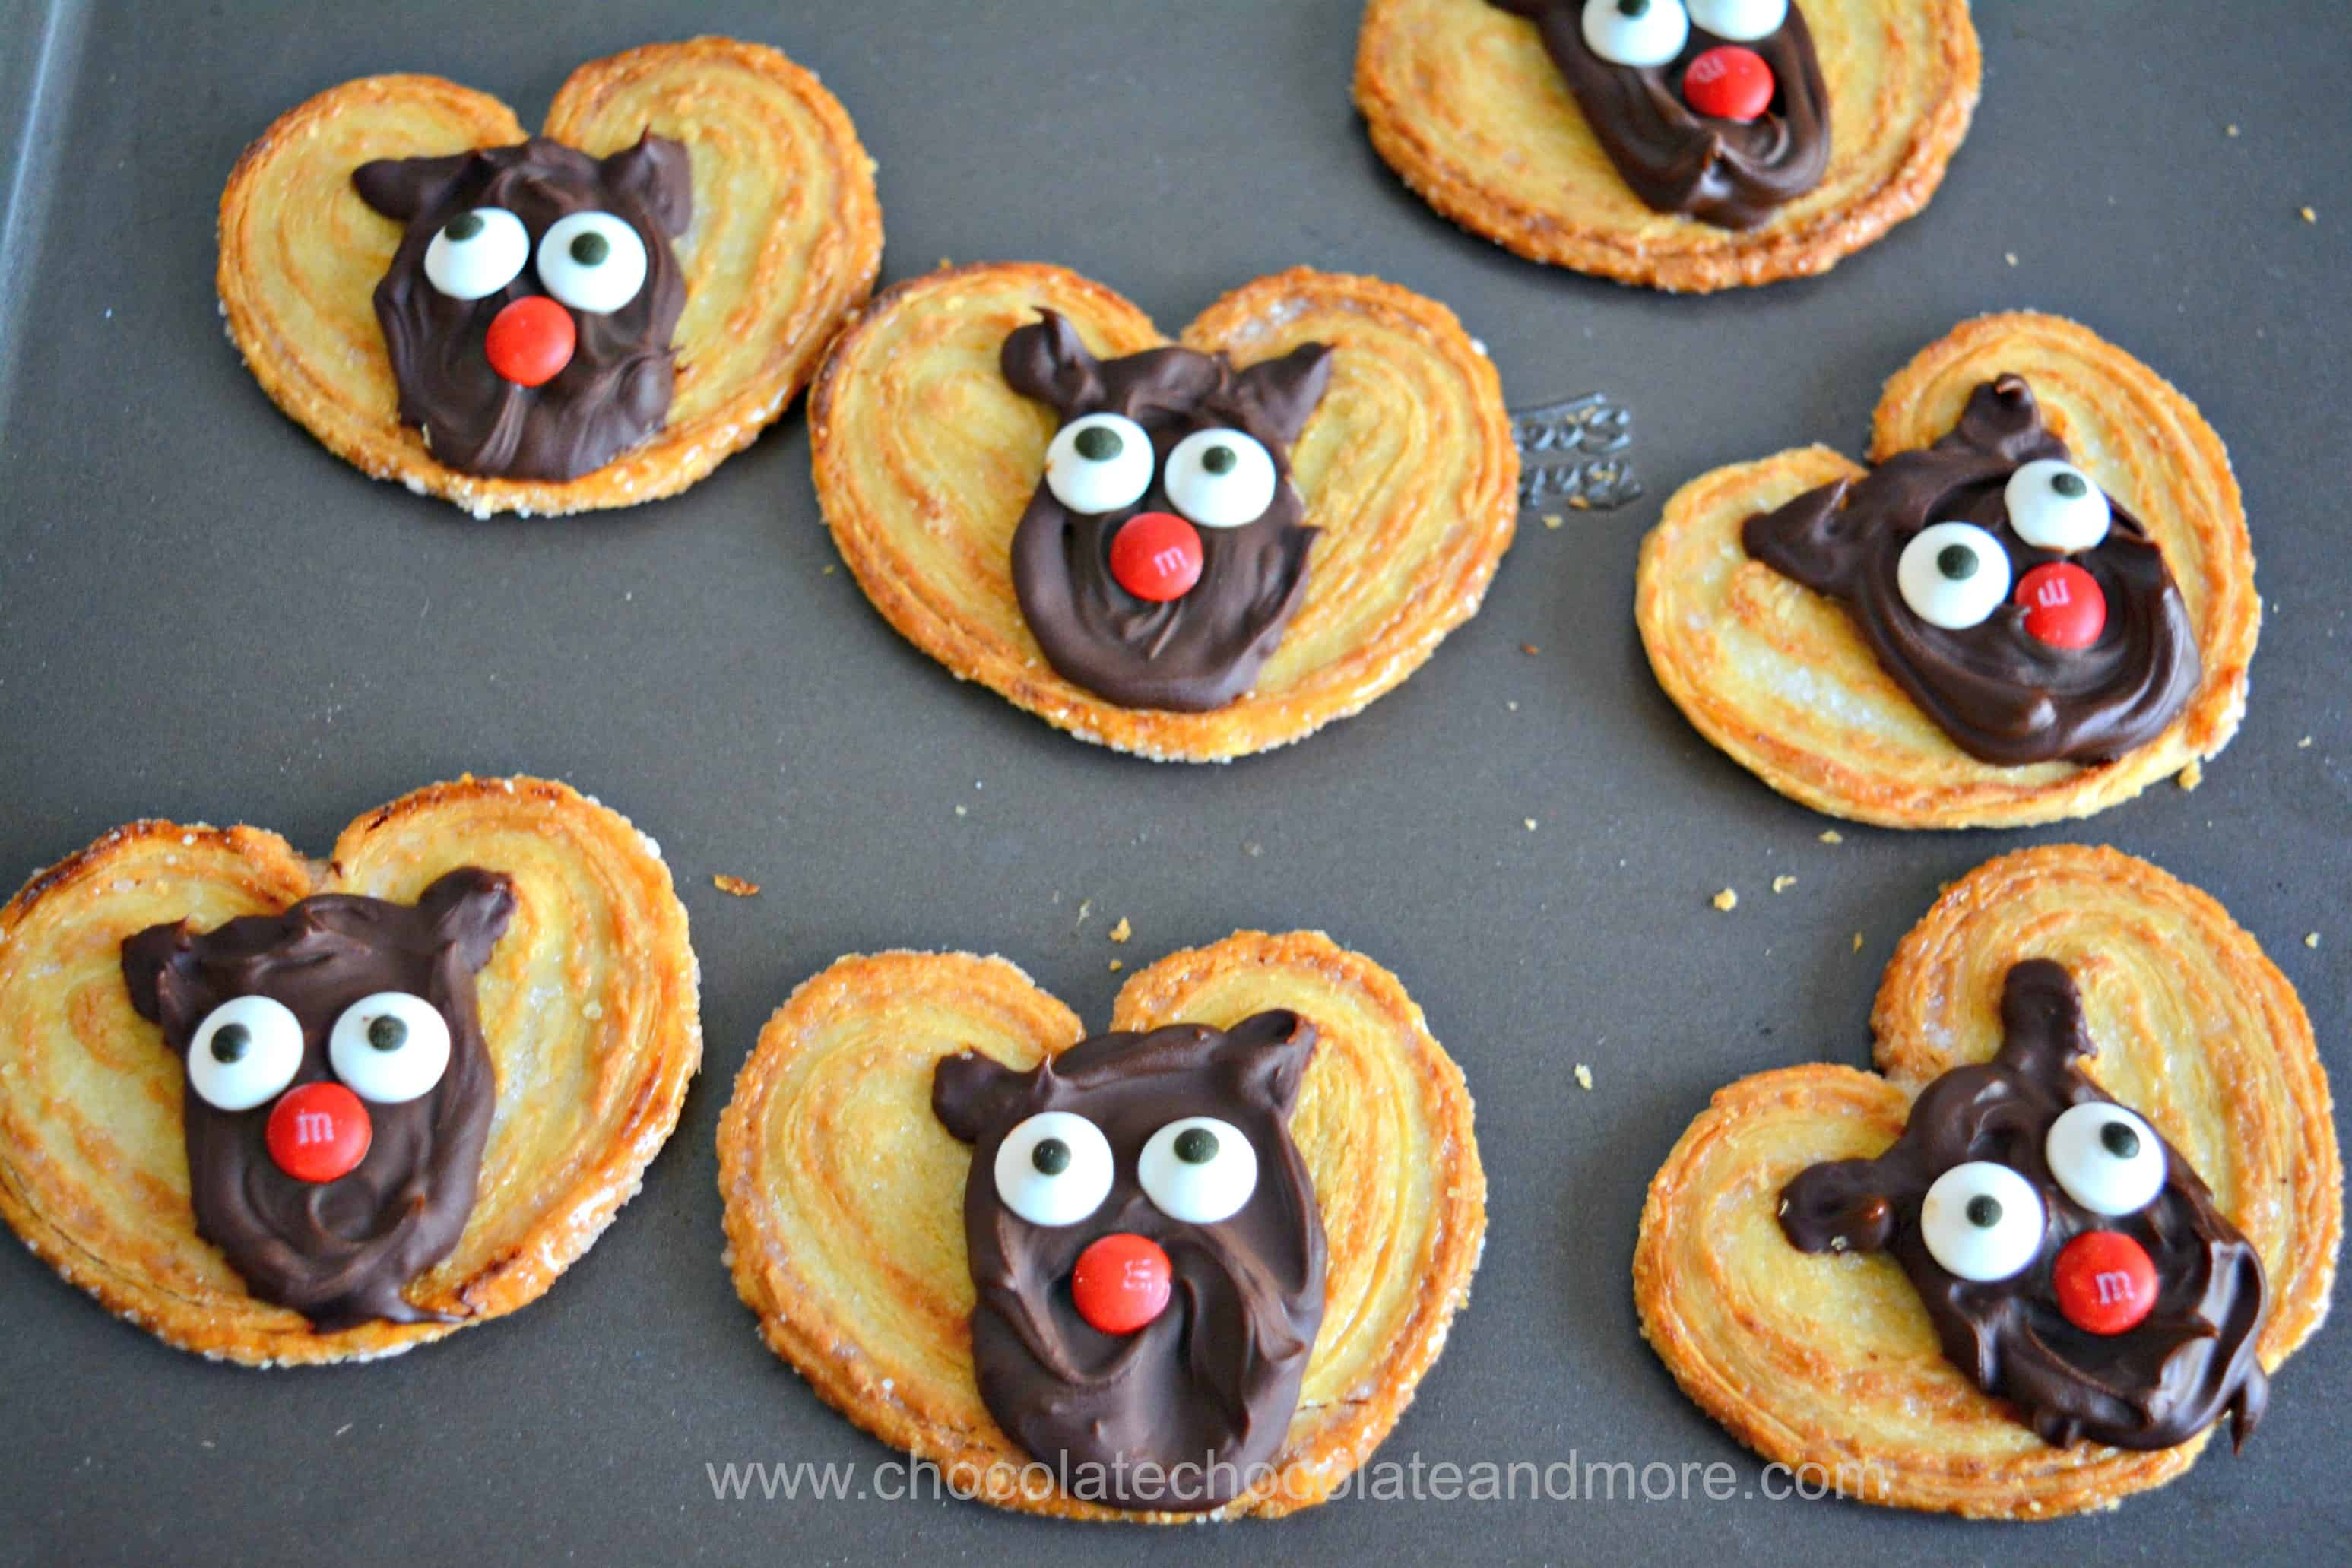 a tray full of palmiers topped with chocolate reindeer faces